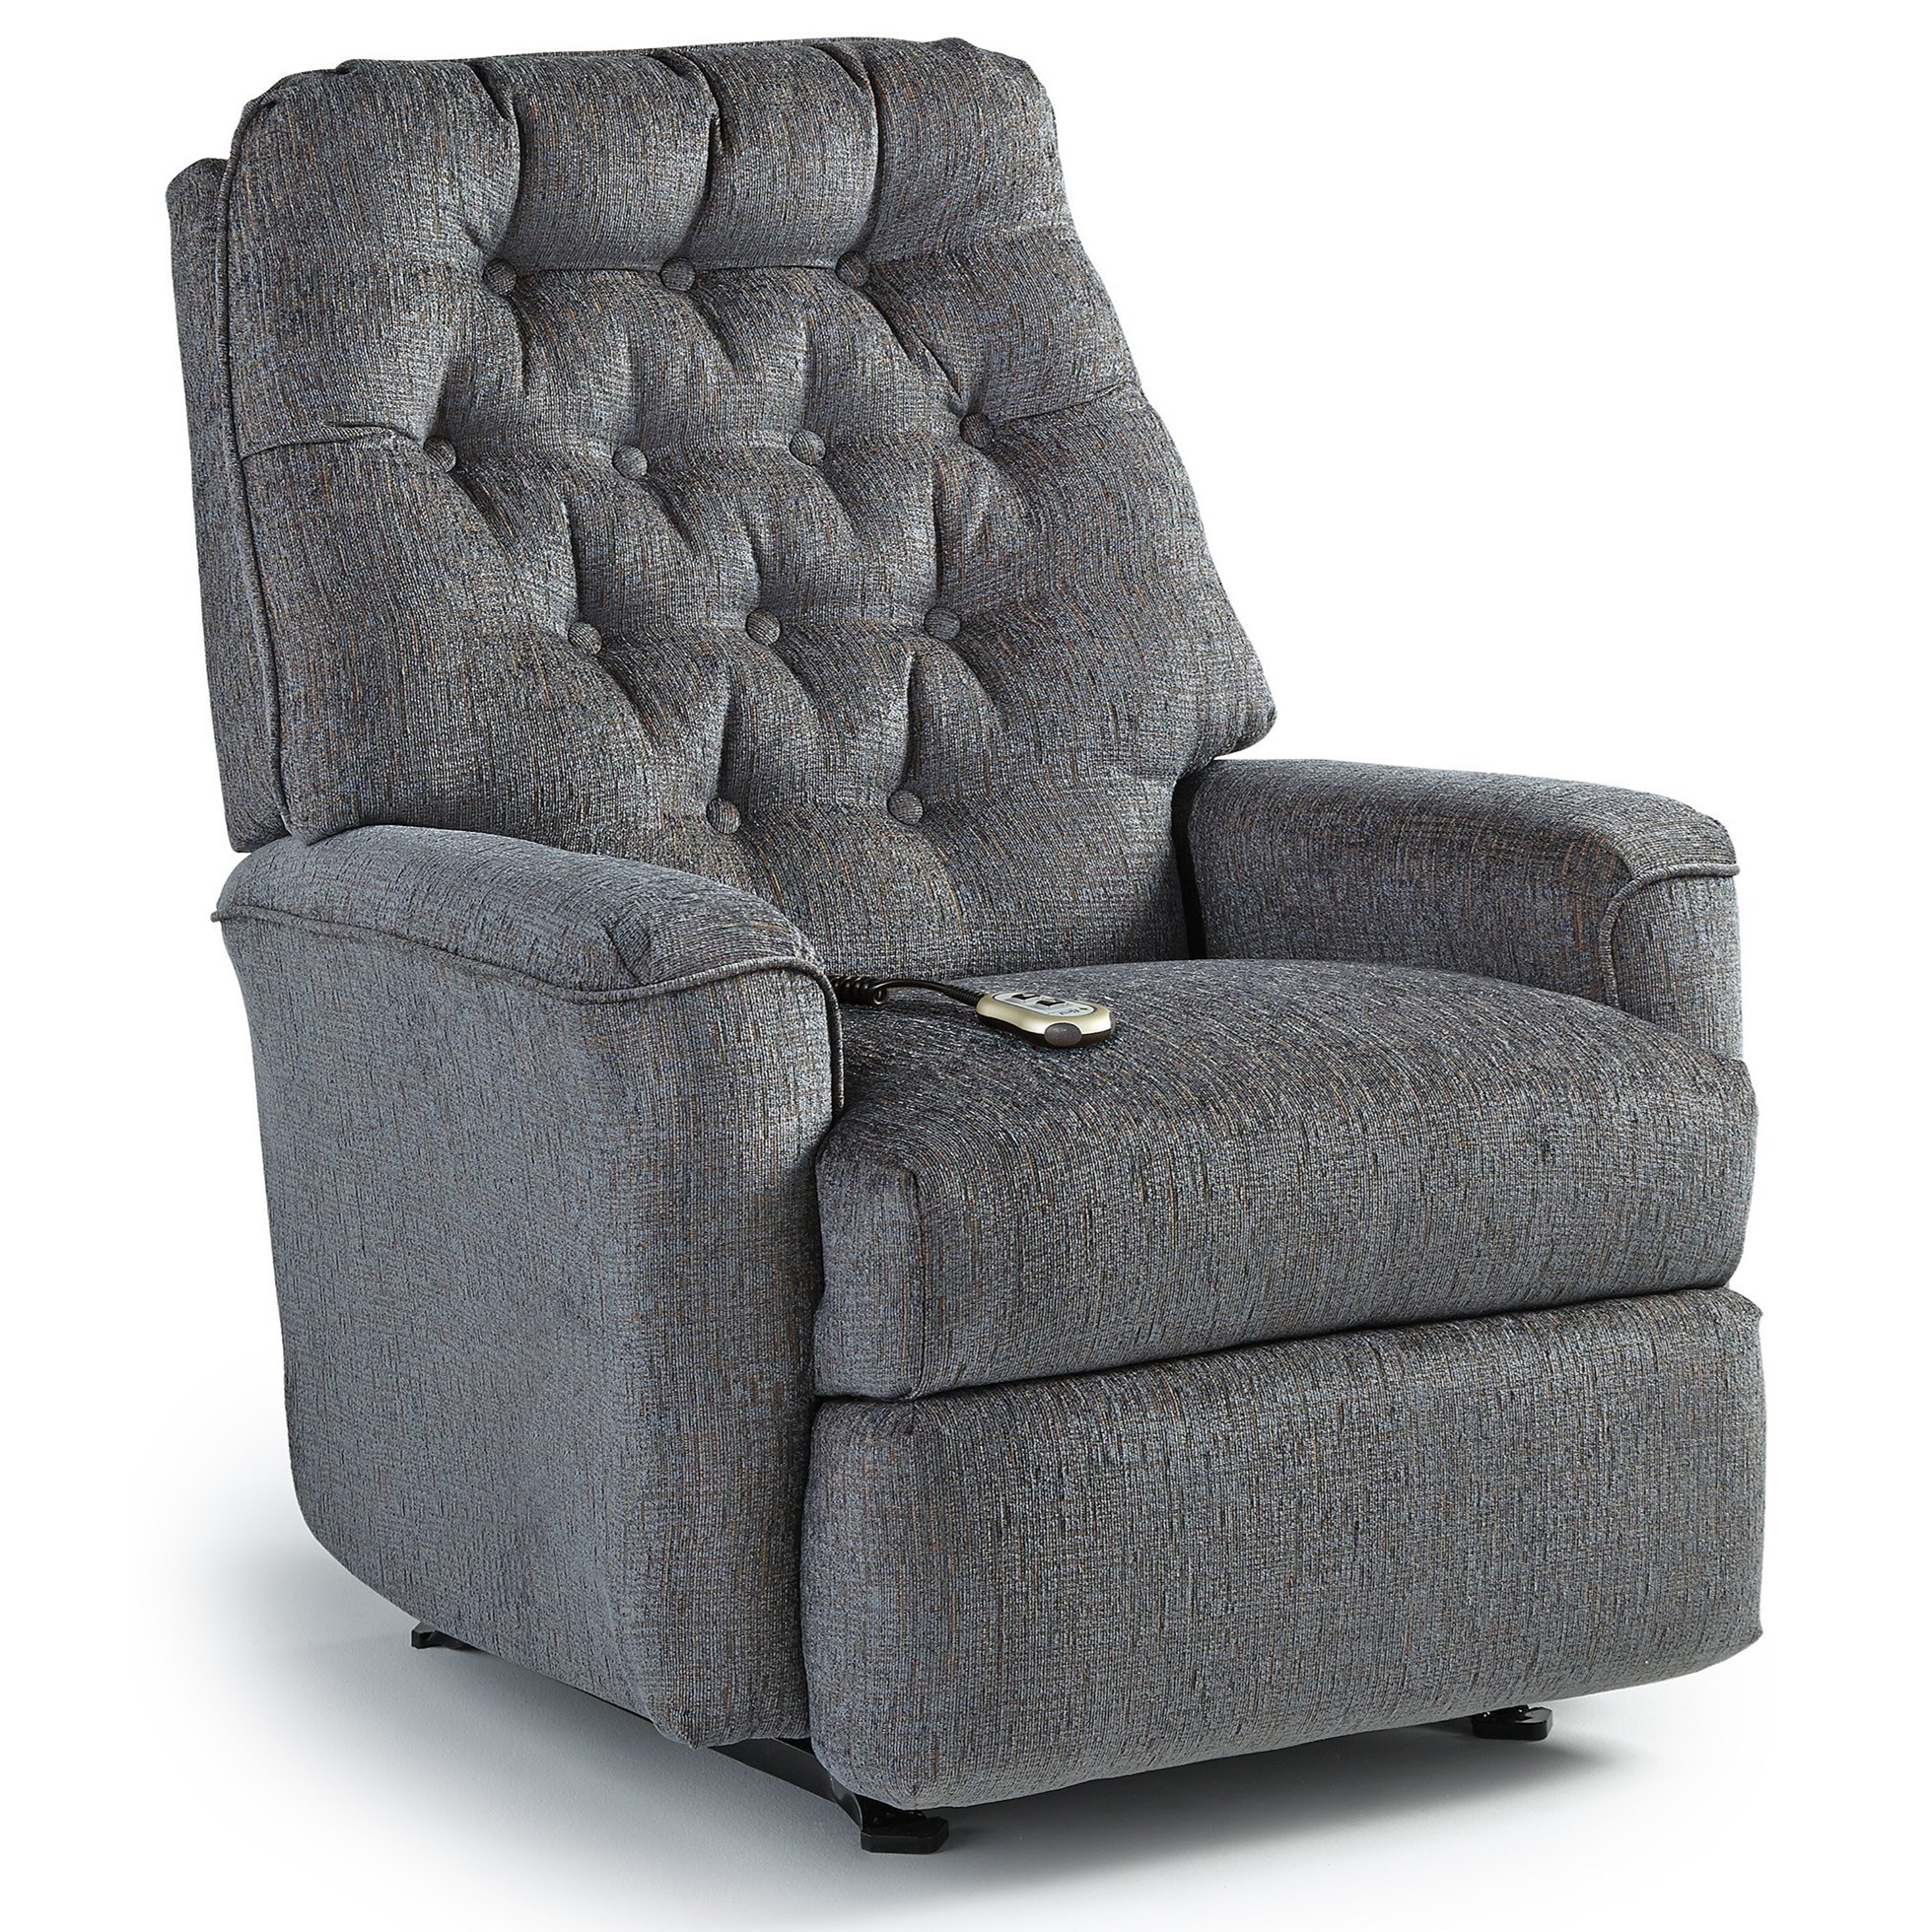 Best Home Furnishings Recliners - Medium Mexi Power Lift Reclining Chair  sc 1 st  Wayside Furniture : best lift recliner - islam-shia.org